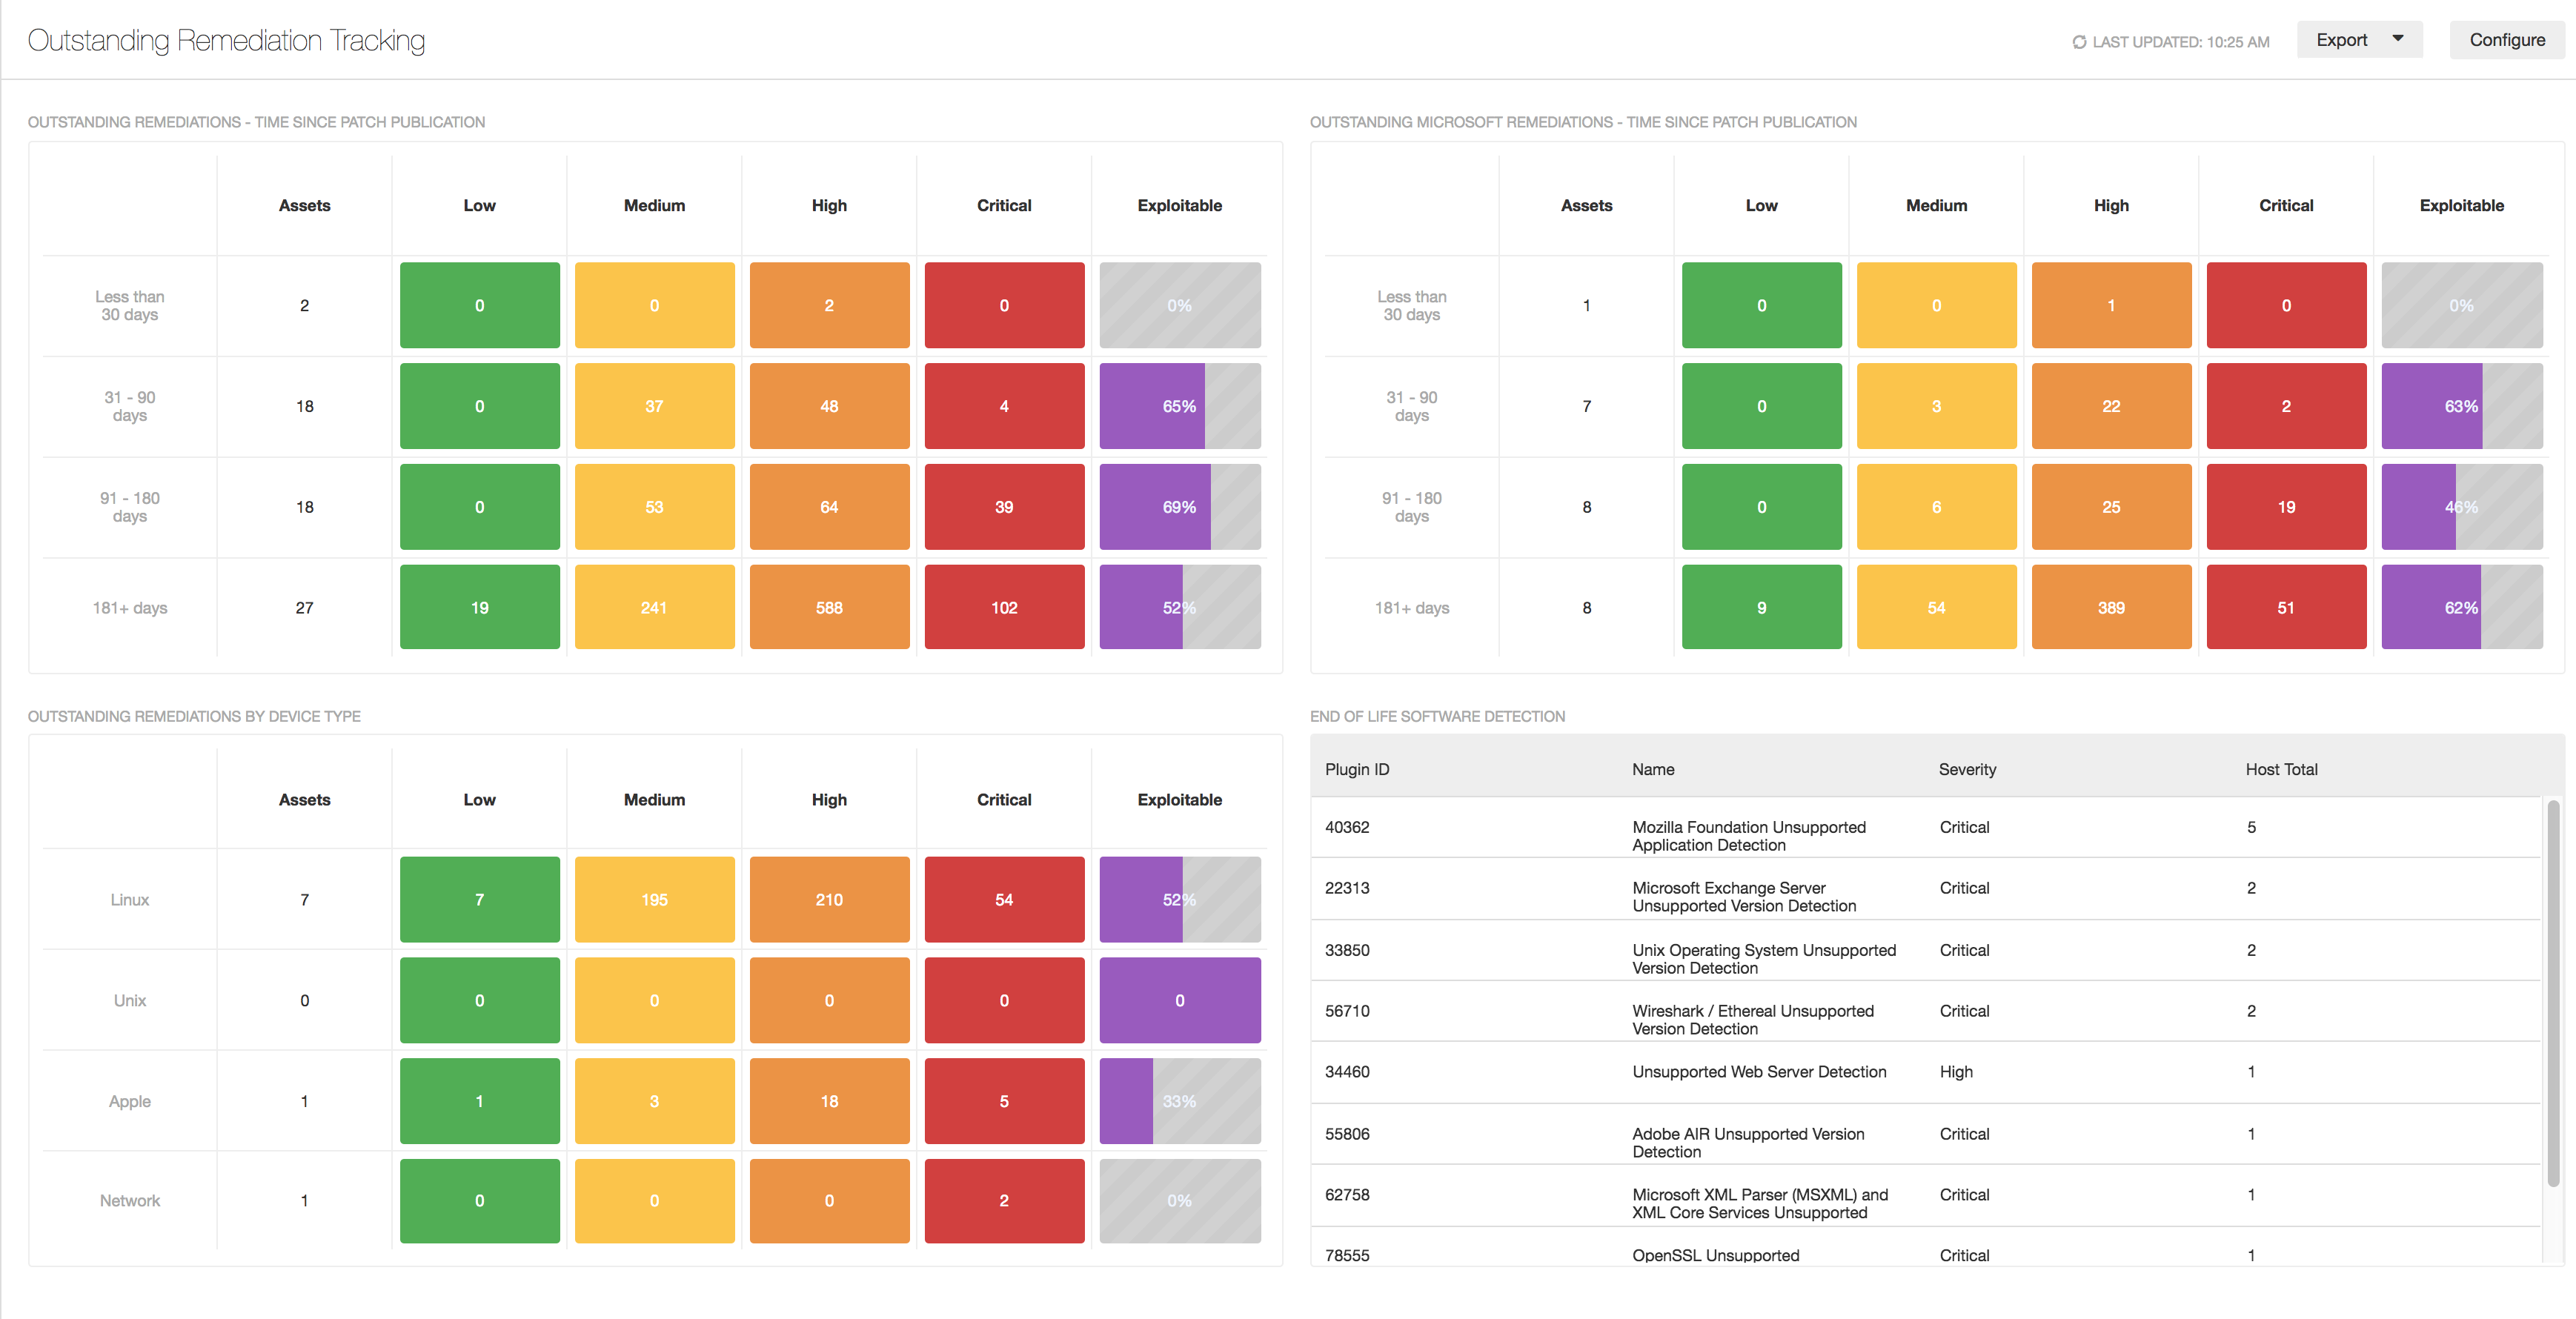 Outstanding Remediation Tracking Dashboard